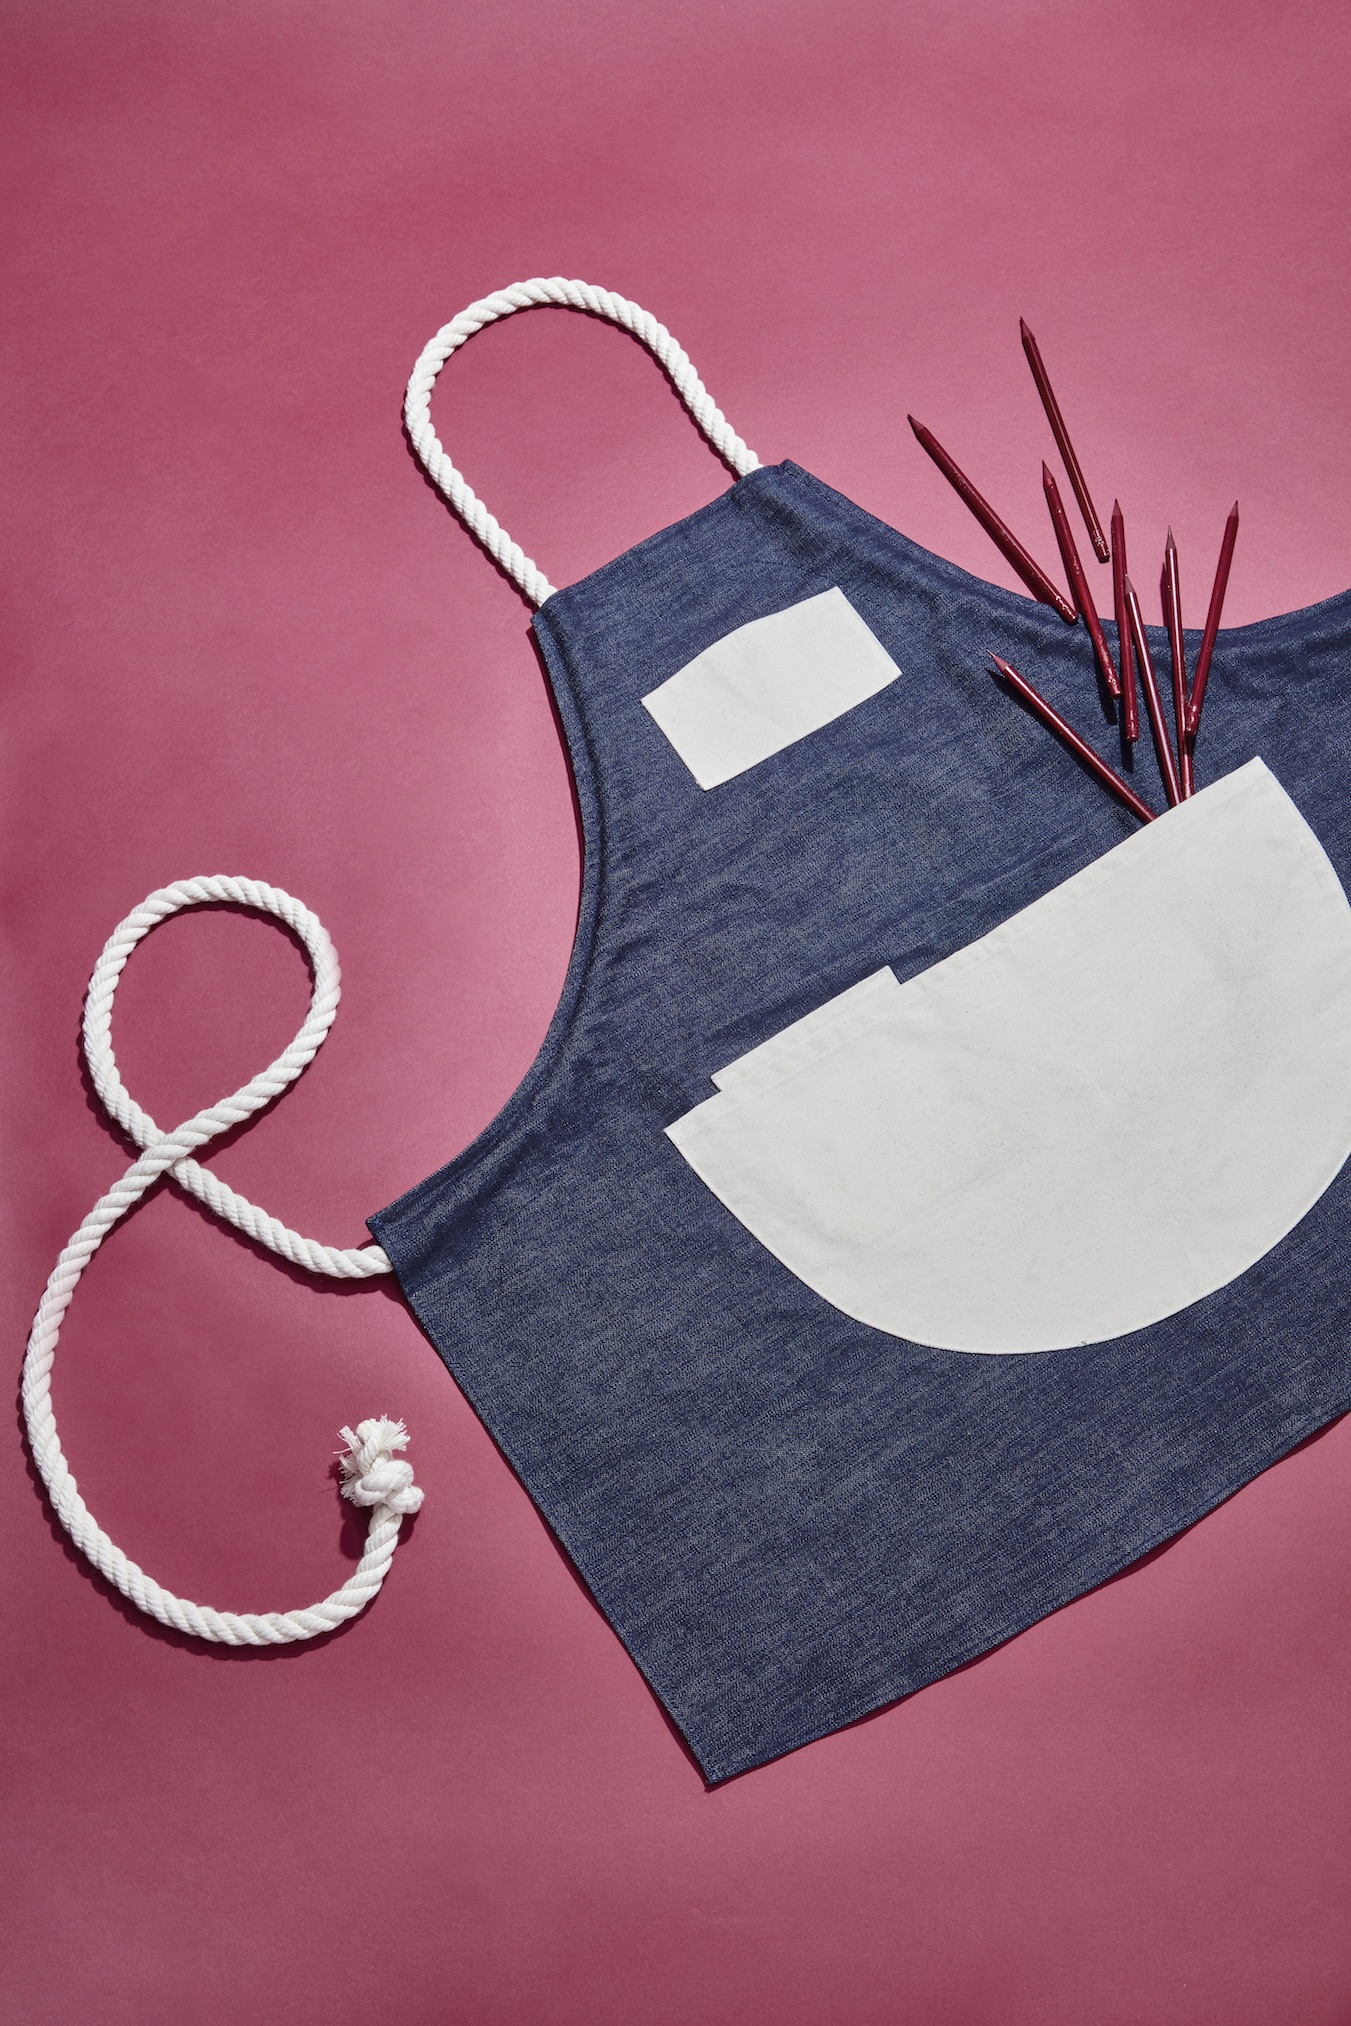 We're pretty into Kristin Amber Morrison's apron game (see our second issue for even more on that!) and this season, the love affair continues with her Maker's Apron. Made from heavy duty, indigo-dyed denim and cleverly laced thick cotton rope straps, this little number is perfect for the rolled-up sleeves set (you know, people who make stuff). The apron's not all ye olde charm, however: That top pocket is just the right dimension to hold your iPhone. After all, if a maker doesn't post her creation to Instagram, did it really happen? Maker's Apron, $100, kristinambermorrison.com